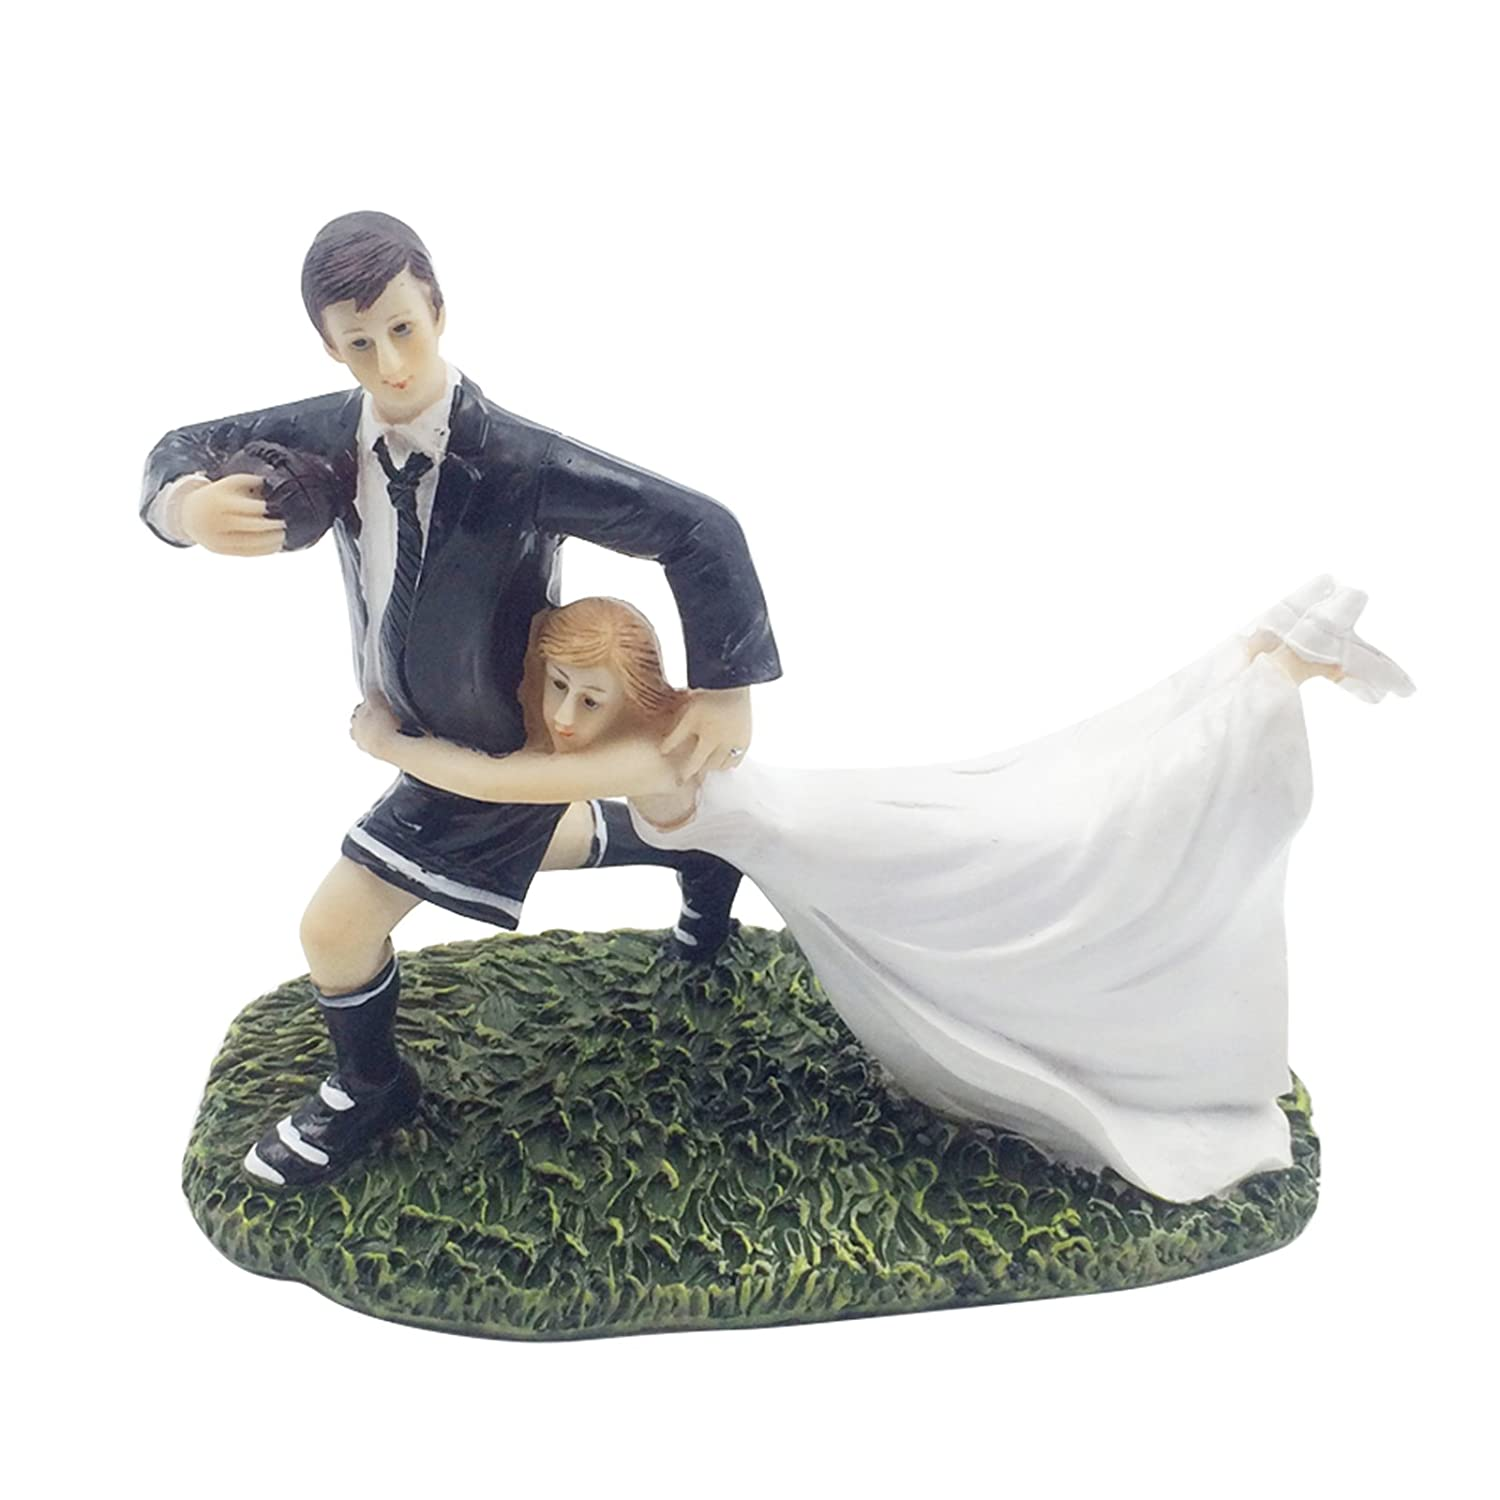 Click to buy Wedding Reception Decoration Ideas: Playful Football Wedding Couple Cake Topper from Amazon!